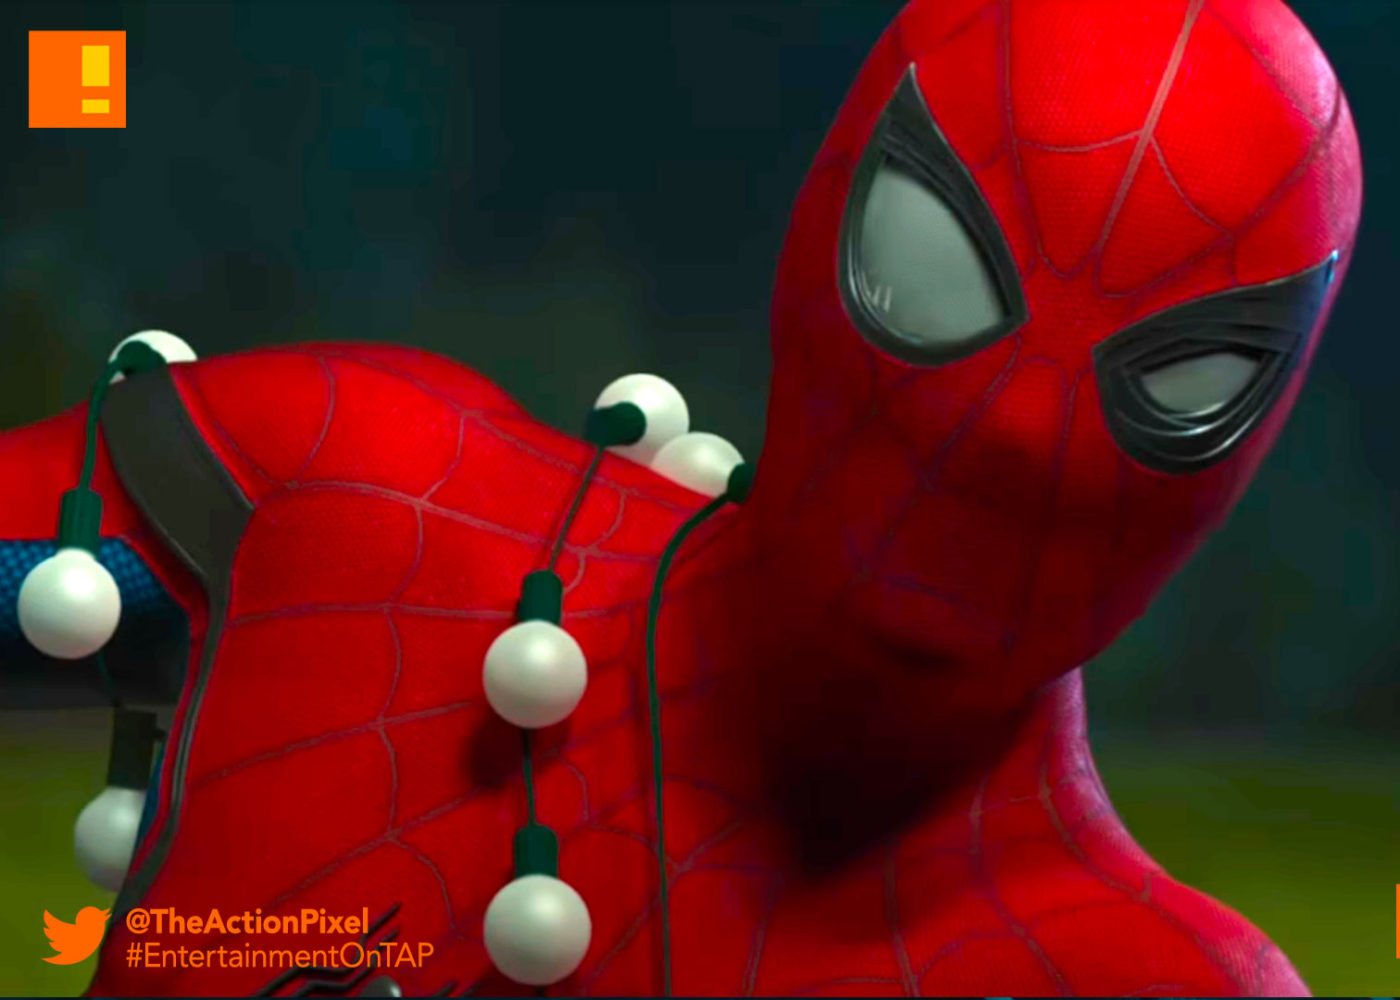 spiderman, poster spider-man: homecoming, spider-man, spiderman, homecoming, marvel, marvel comics, disney, marvel studios, sony, the action pixel, entertainment on tap, tom holland, images,vulture, trailer, trailer 3,